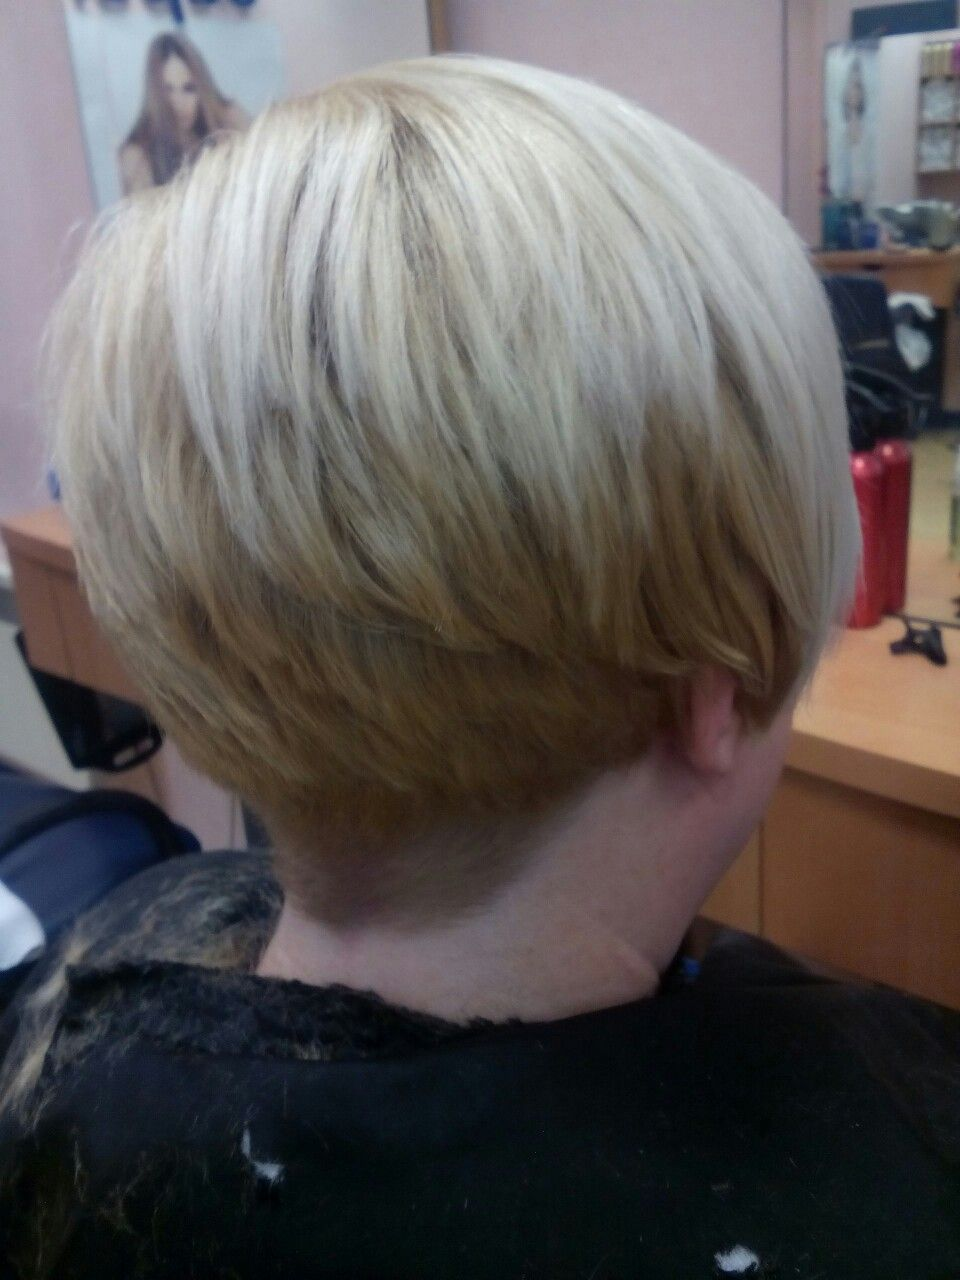 Clippers and scissors are used for this amazing short hairstyle it